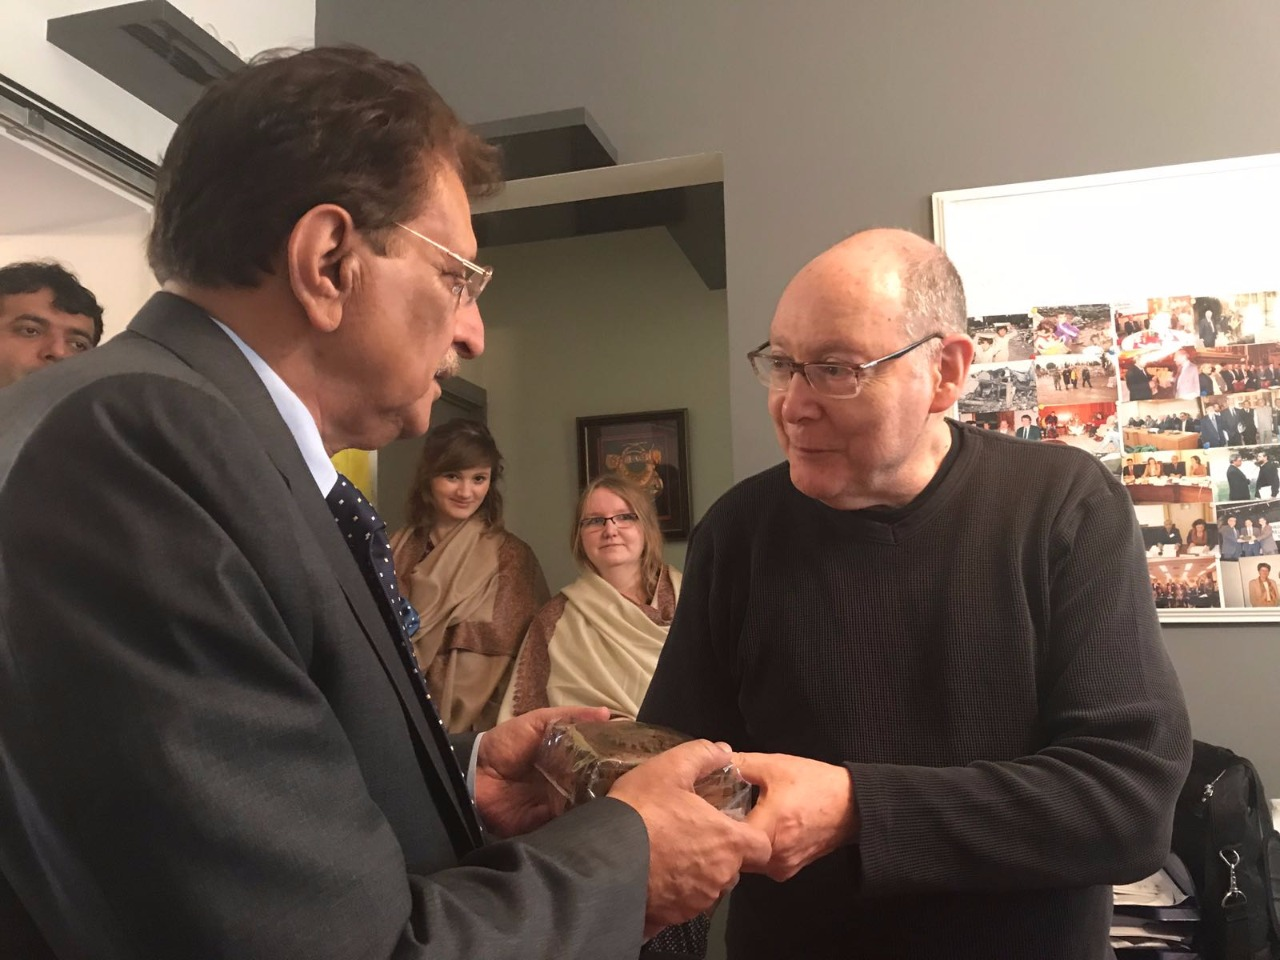 Brussels: Ambassador Anthony receives a shield from AJK's PM Raja Farooq Haider